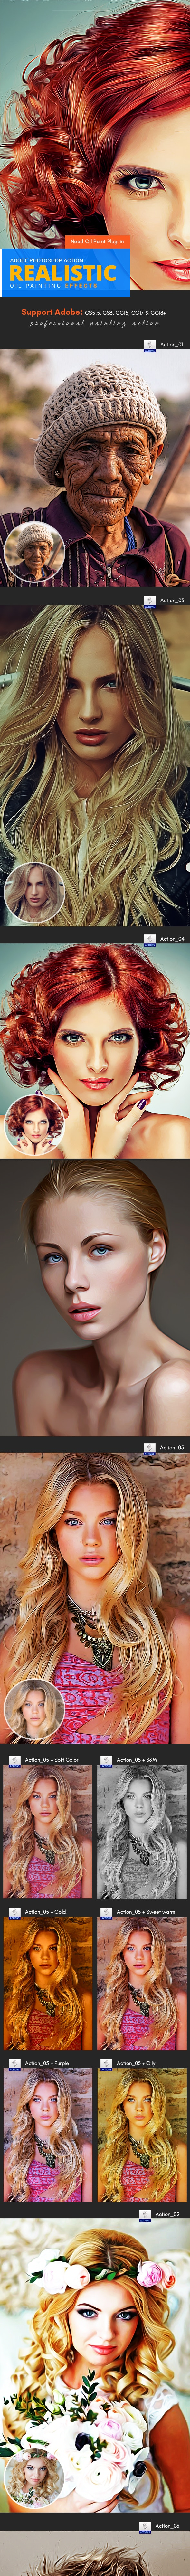 Realistic Oil Painting Action - Photo Effects Actions